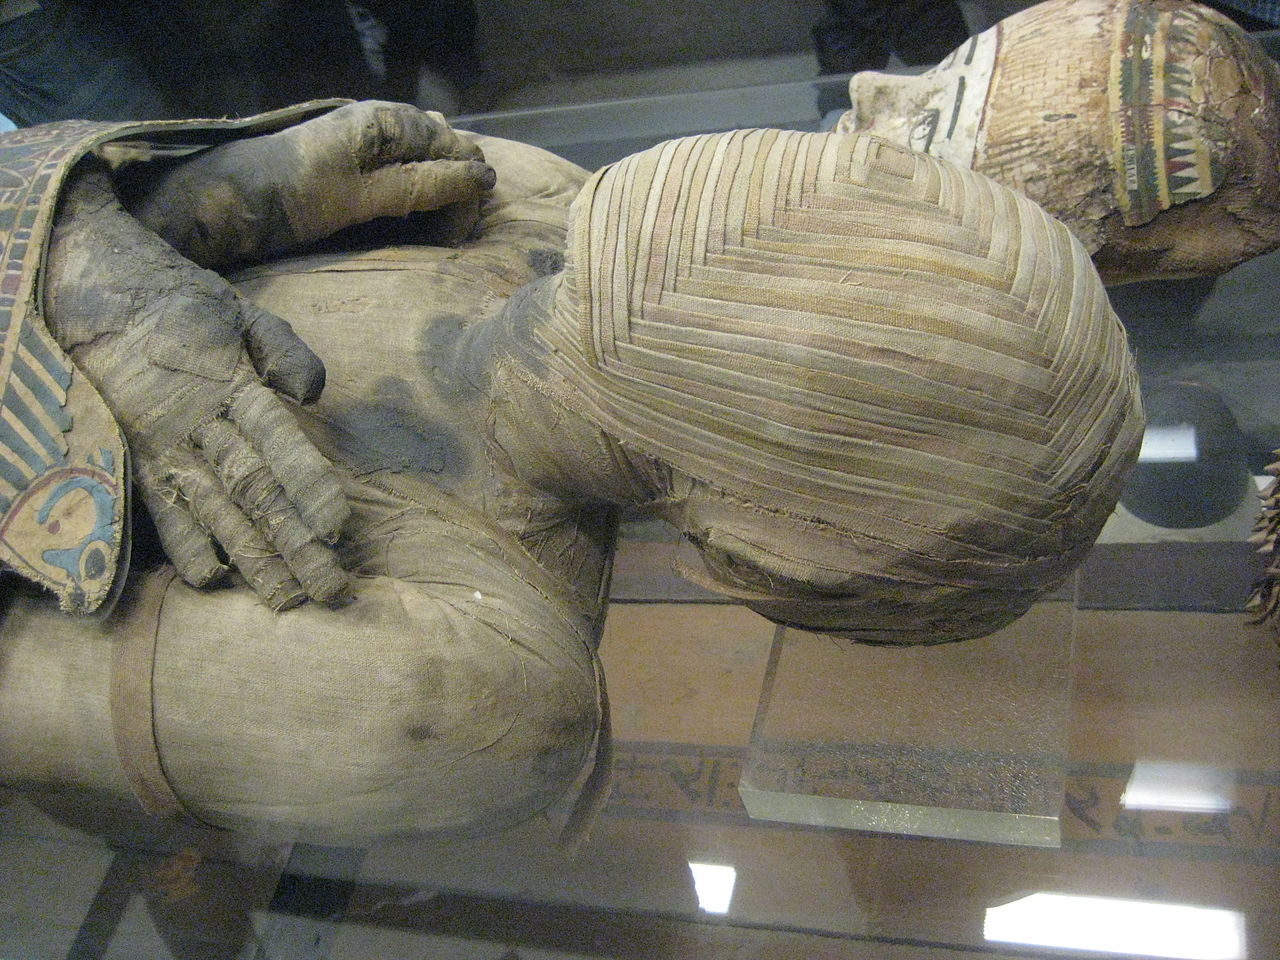 Mummification in Ancient Egypt Started 1,500 Years Earlier Than Previously Thought